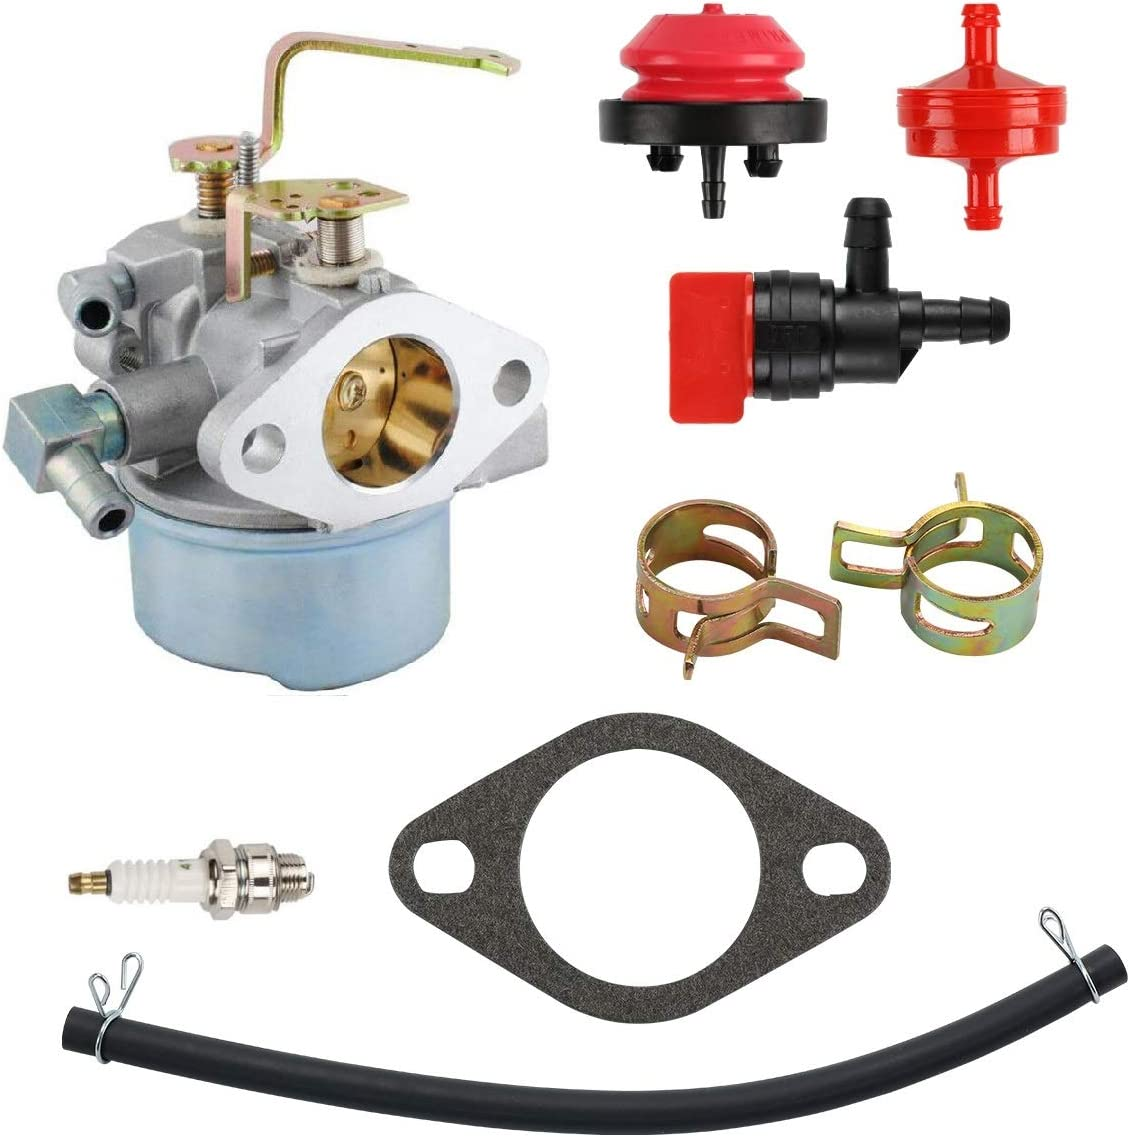 MDAIRC 640152 Carburetor for Tecumseh 640152A 640023 640051 640140 640260B HM80 HM90 HM100 8hp -10hp Tecumseh Engine Coleman PowerMate 5000 watt Generator Carb with Spark Plug kit